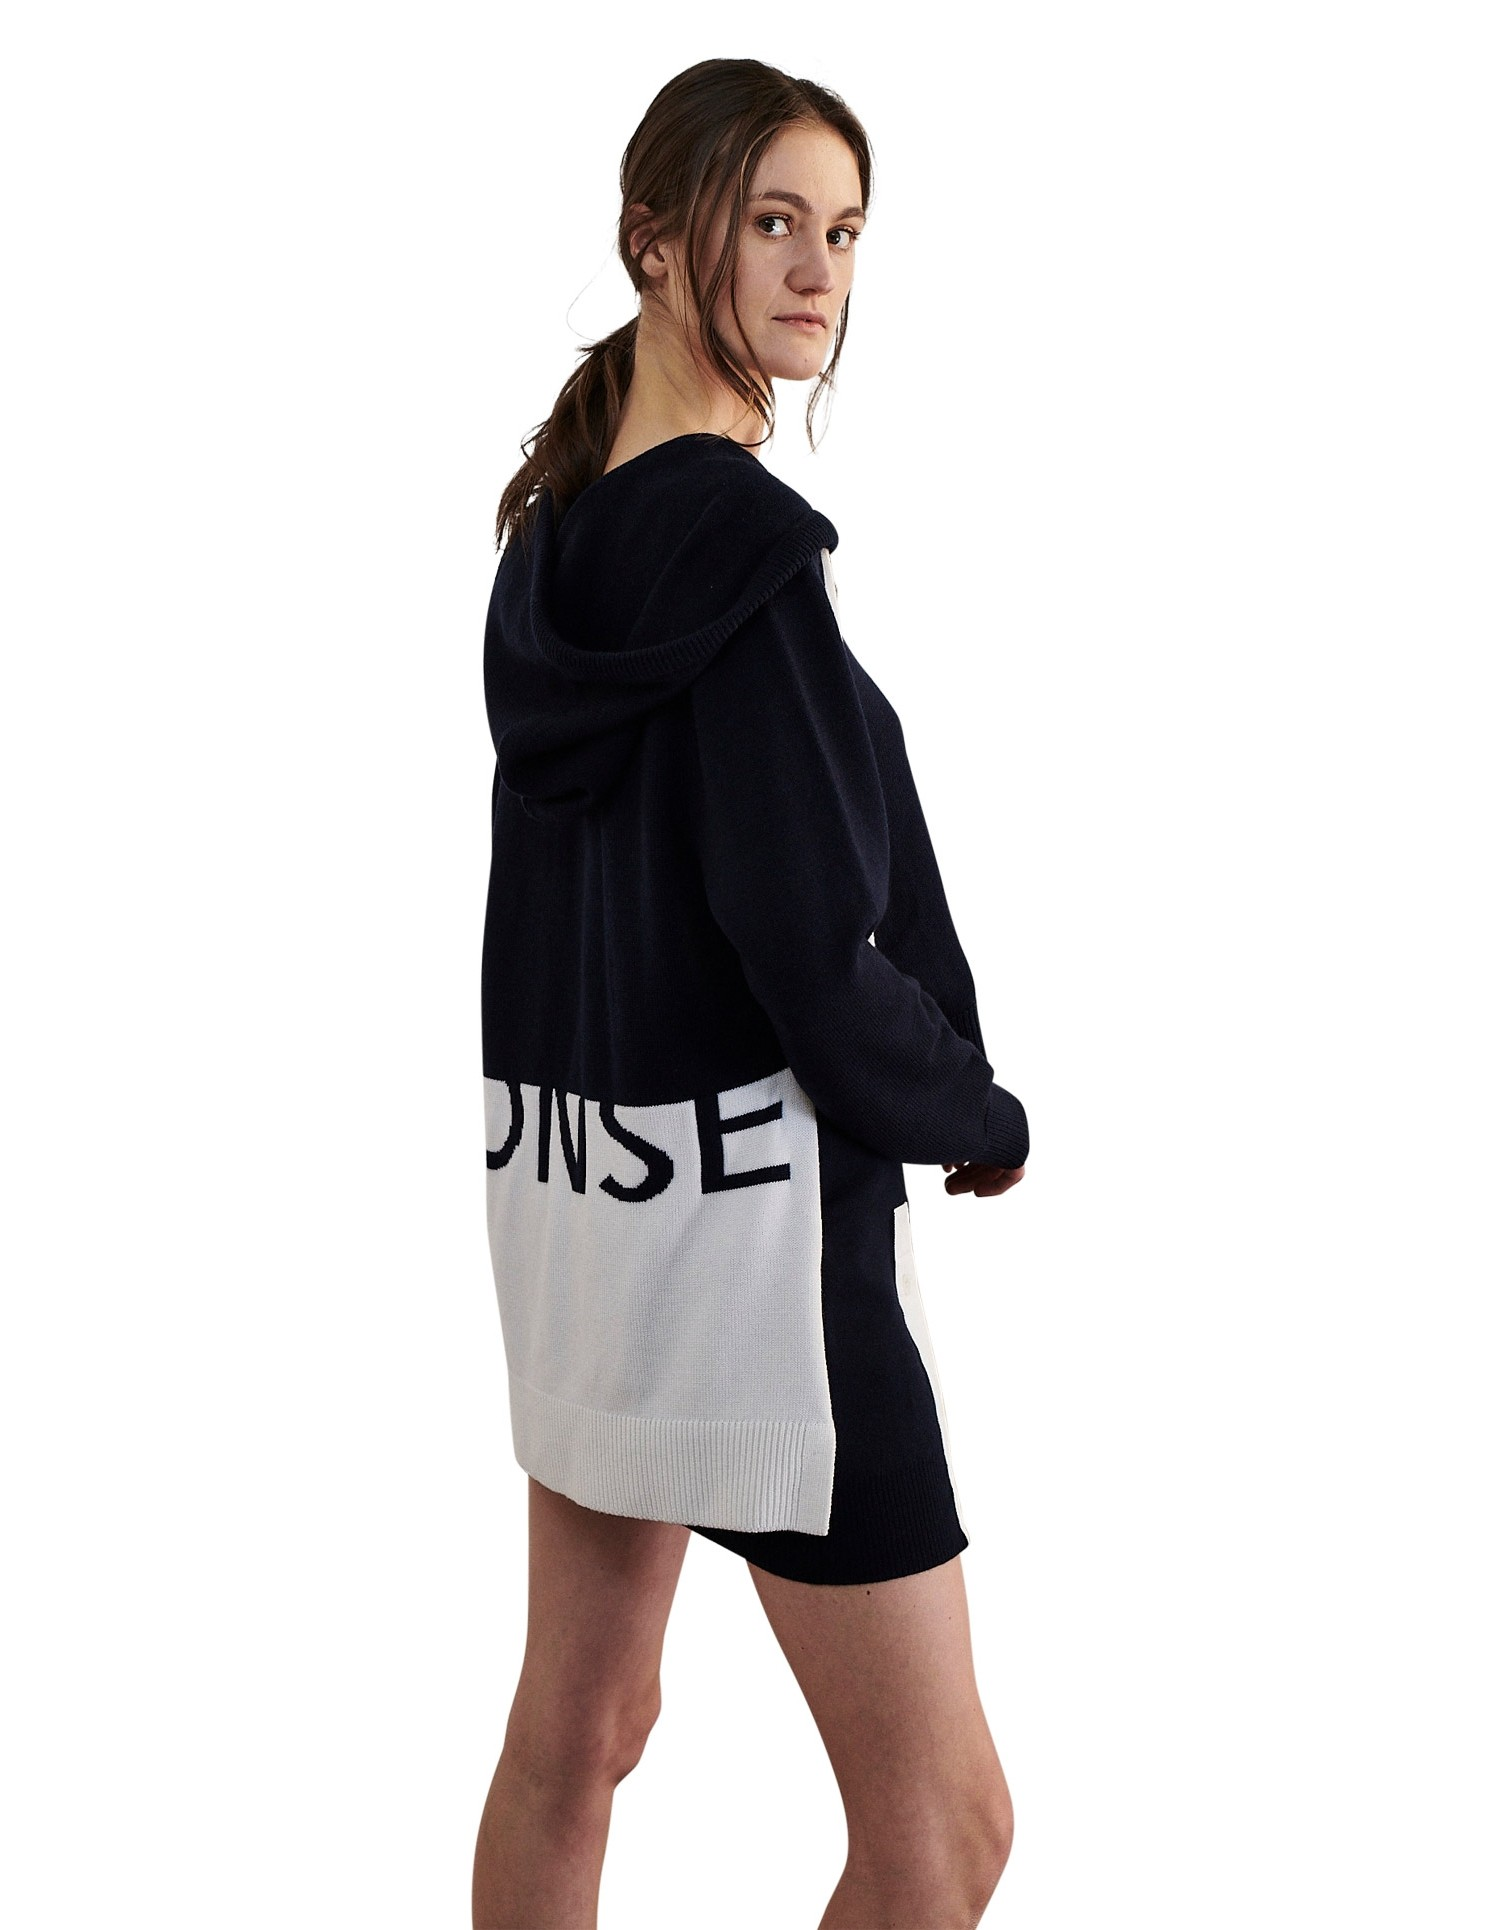 MONSE Rugby Knit Hoodie in Midnight and Ivory on Model Back View